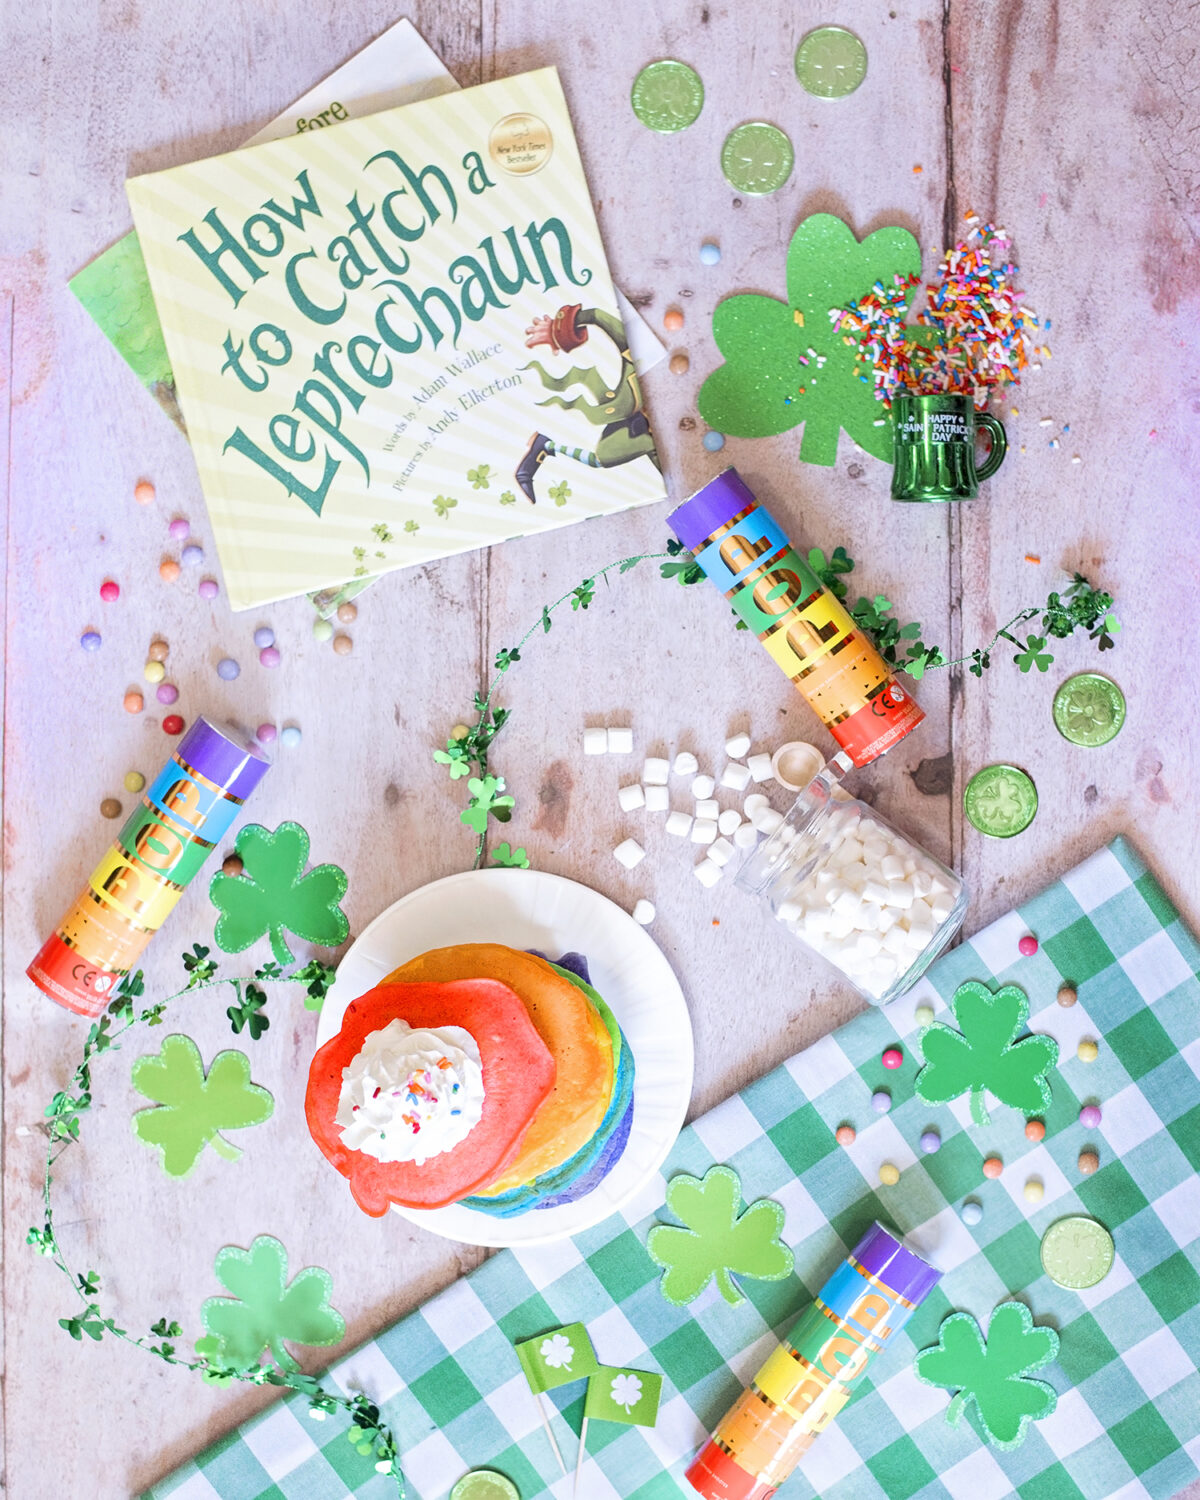 Fun St. Patrick's Breakfast Ideas for kids with rainbow pancakes and shamrock decorations.  Our top ten leprechaun pranks.